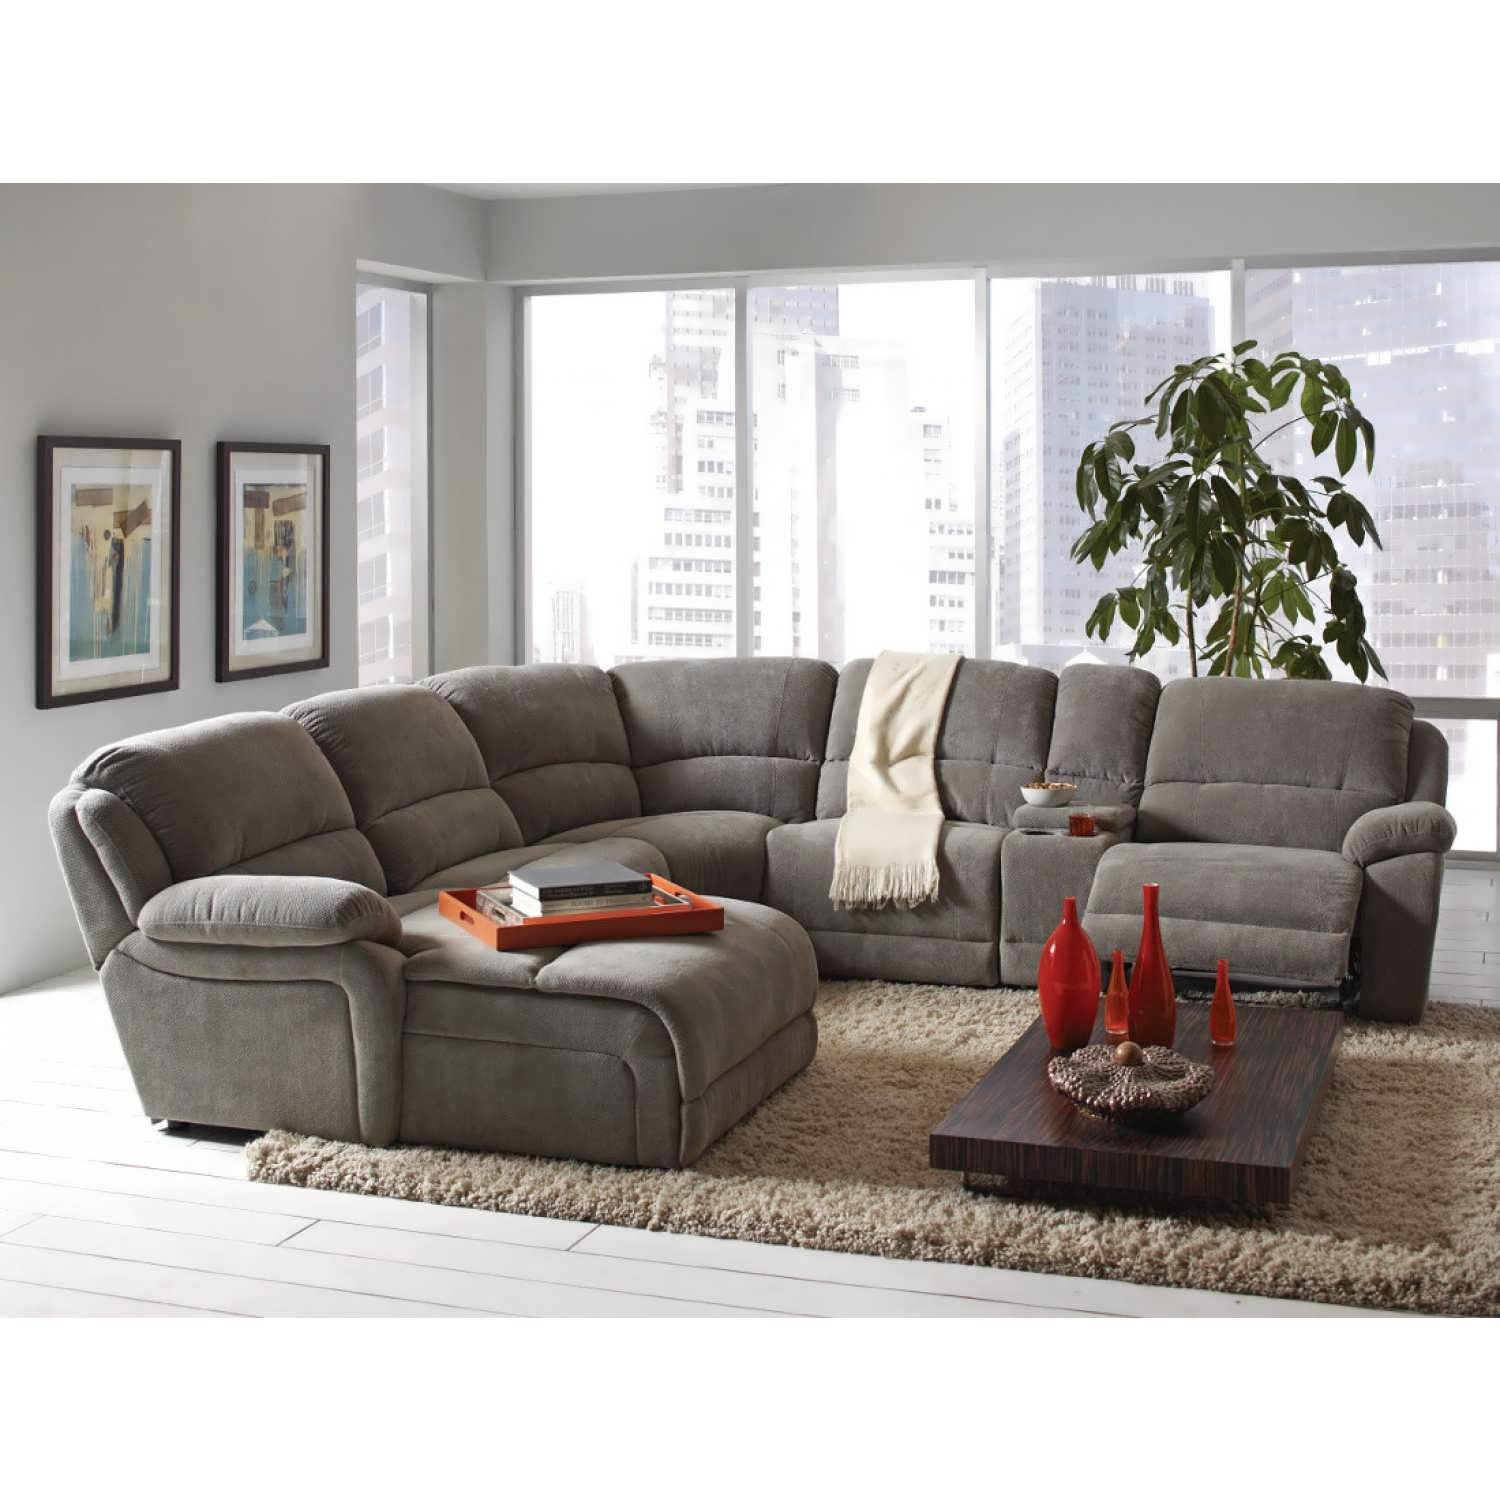 incredible sectional sofas with recliners and cup holders inspiration-Finest Sectional sofas with Recliners and Cup Holders Concept